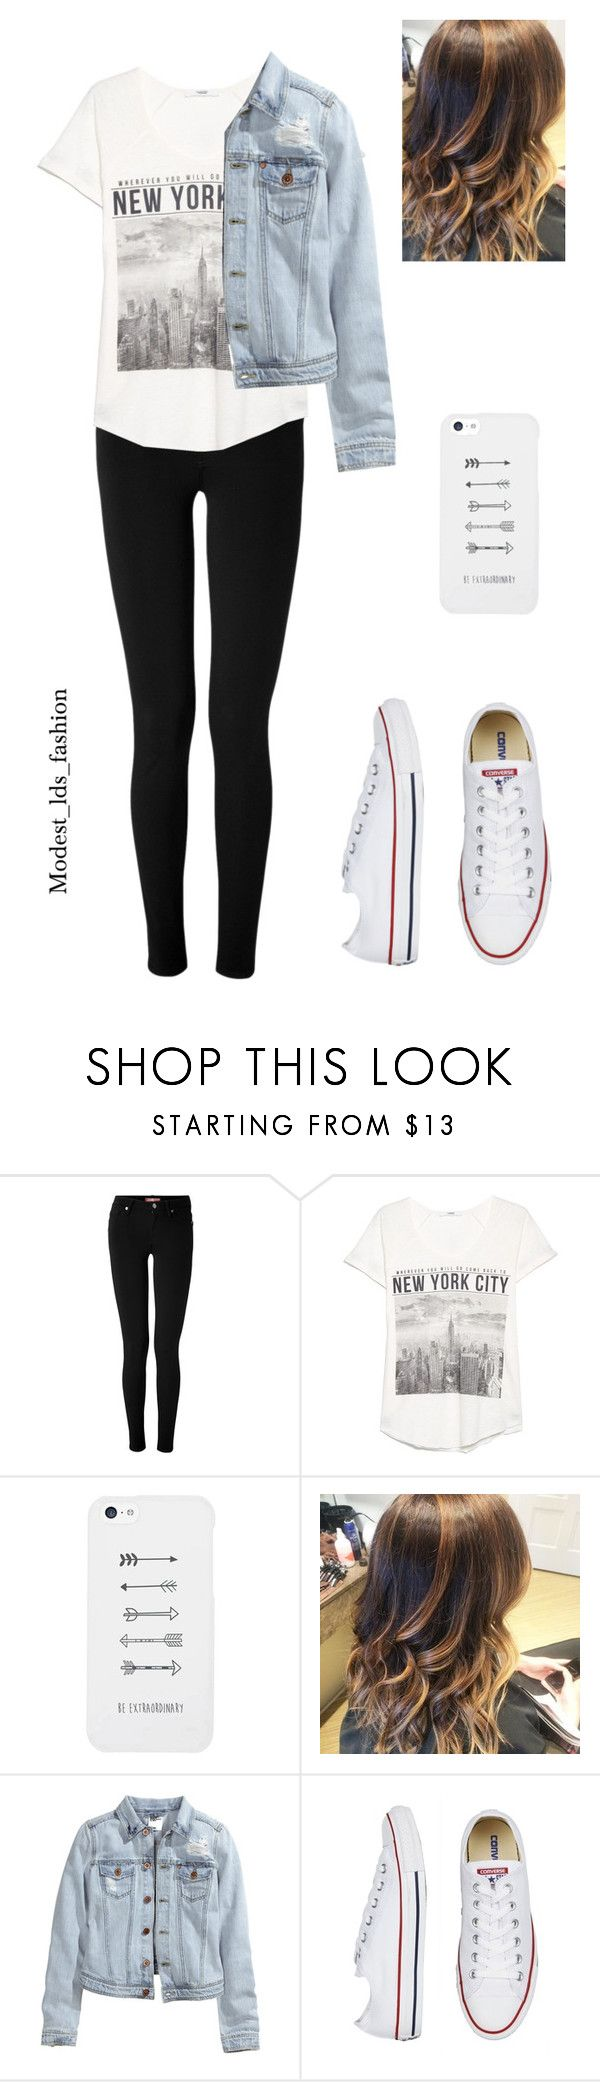 """""""Modest_lds_fashion"""" by modest-mormon-fashion ❤ liked on Polyvore featuring 7 For All Mankind, MANGO, LG and H&M"""